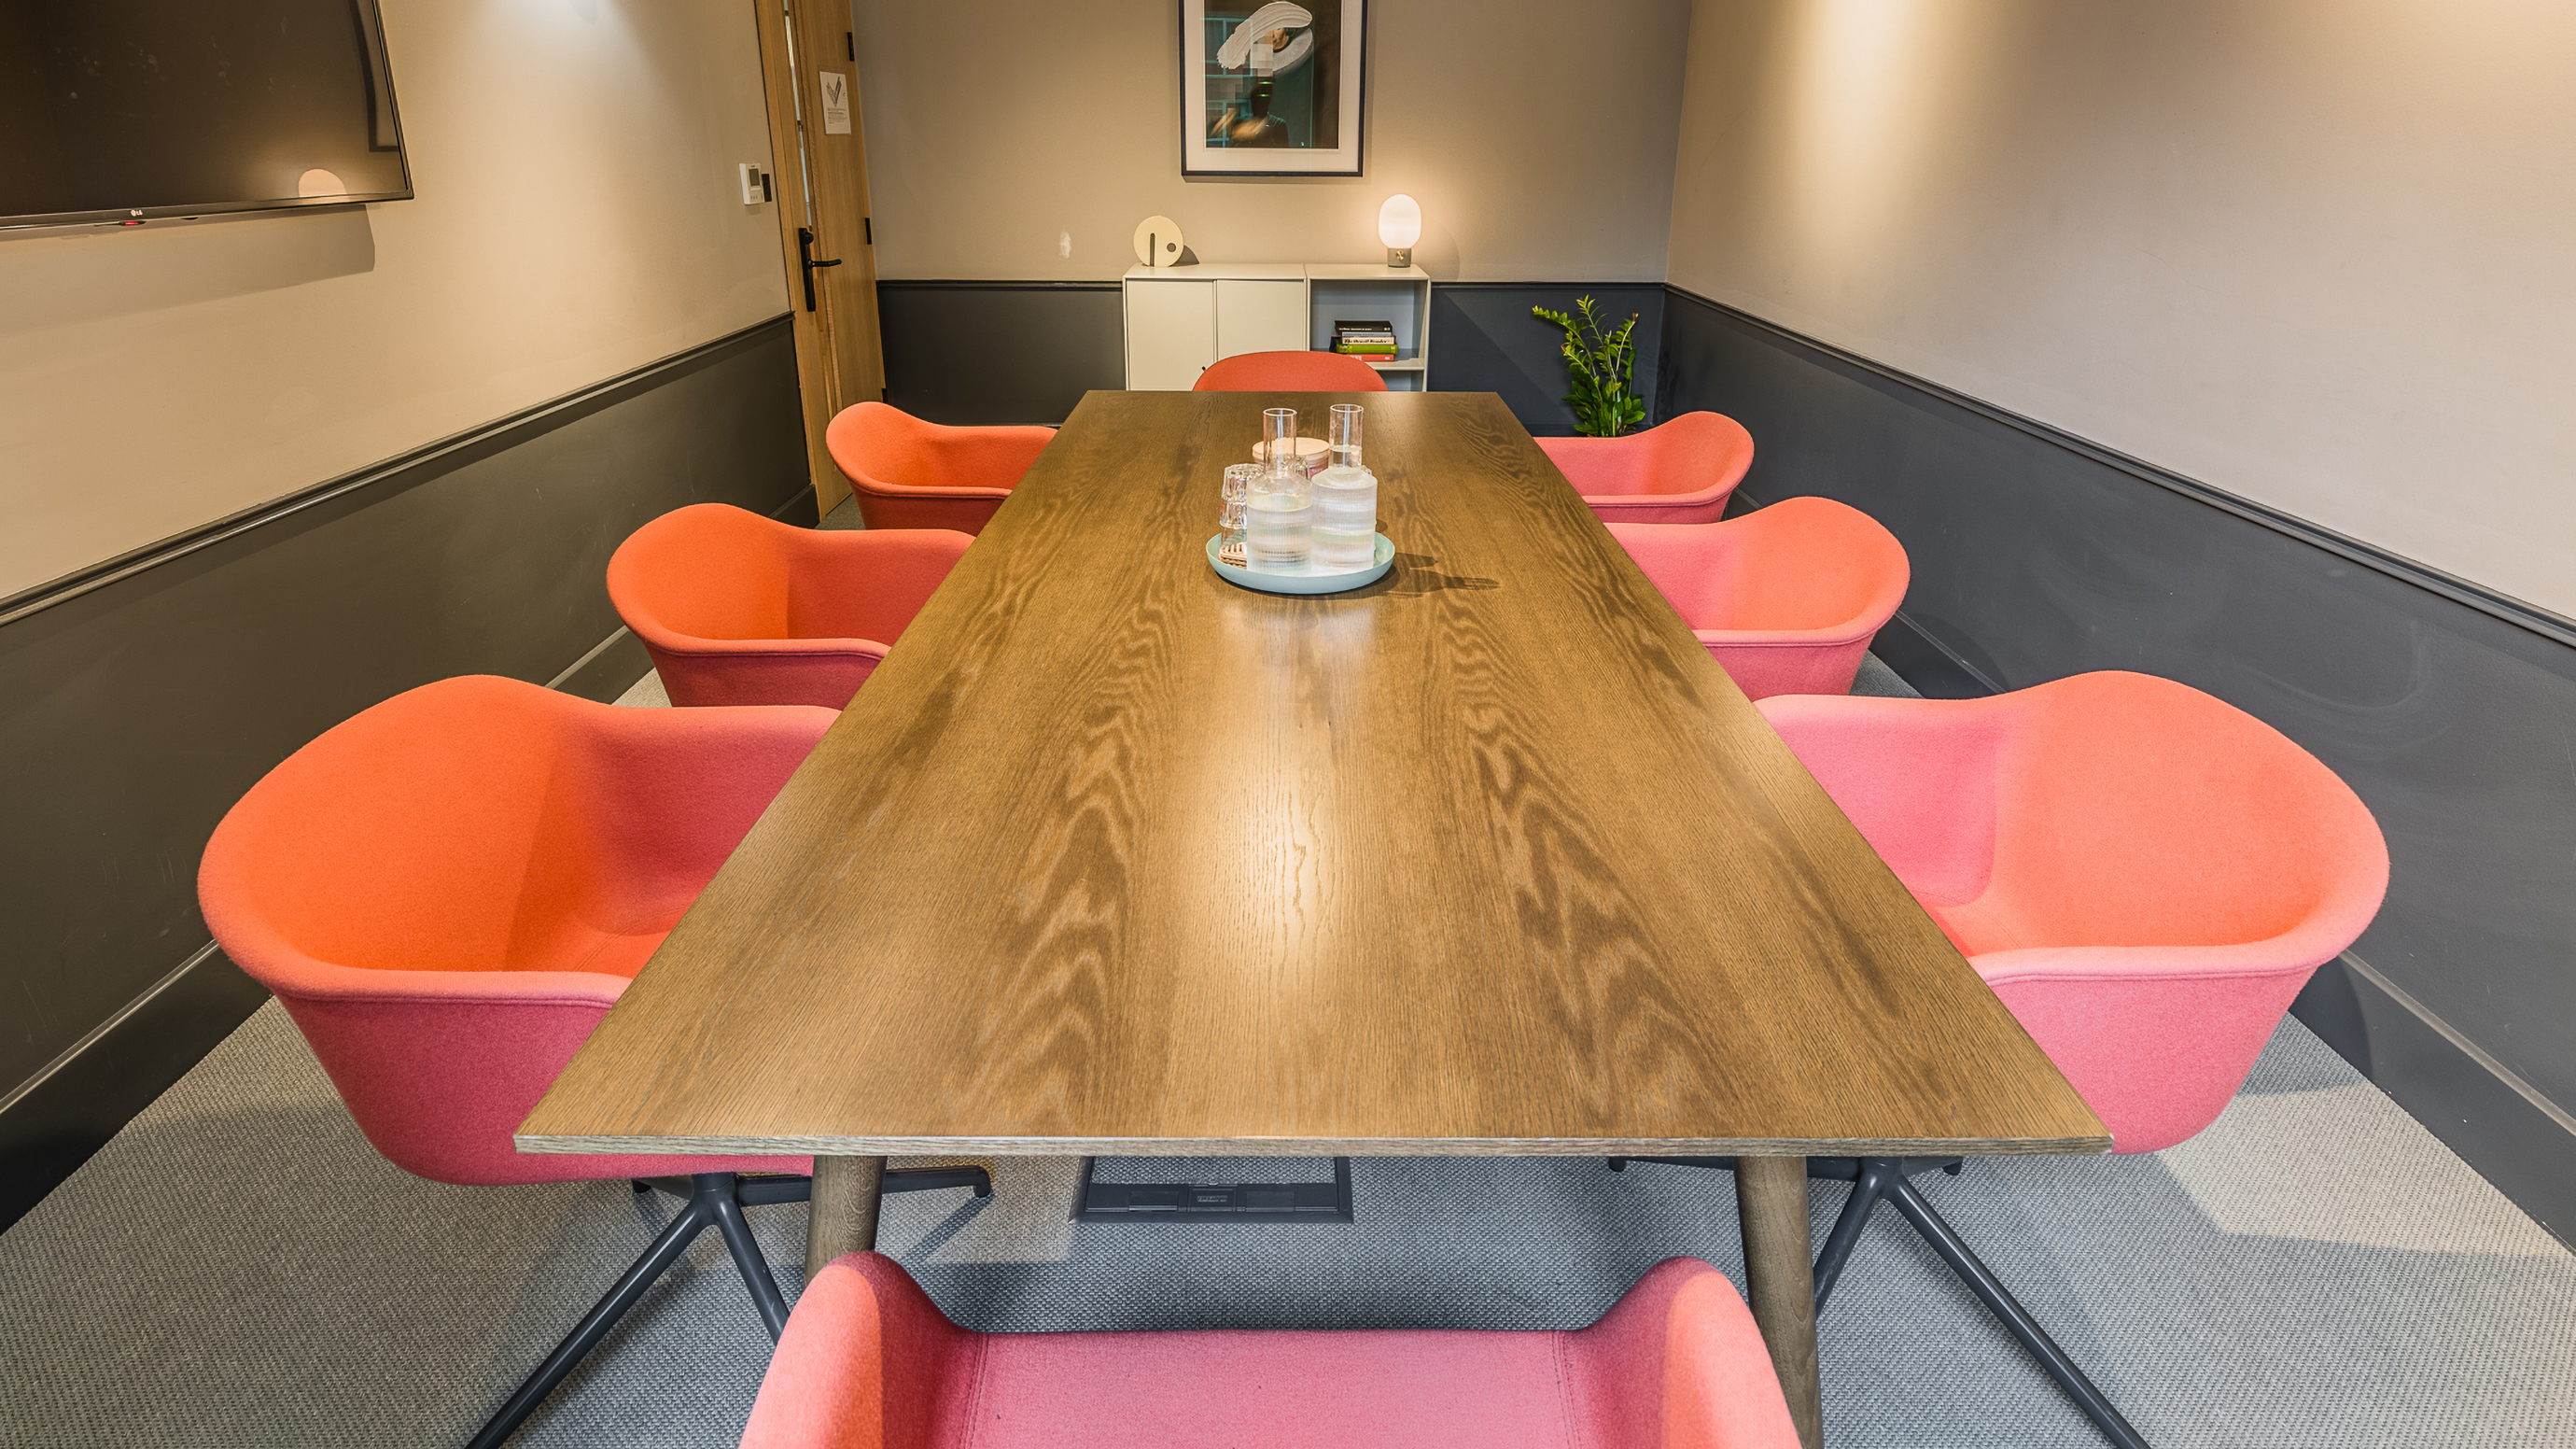 Medium meeting room with wooden rectangular table and pink chairs and grey walls at TOG building Thomas House London